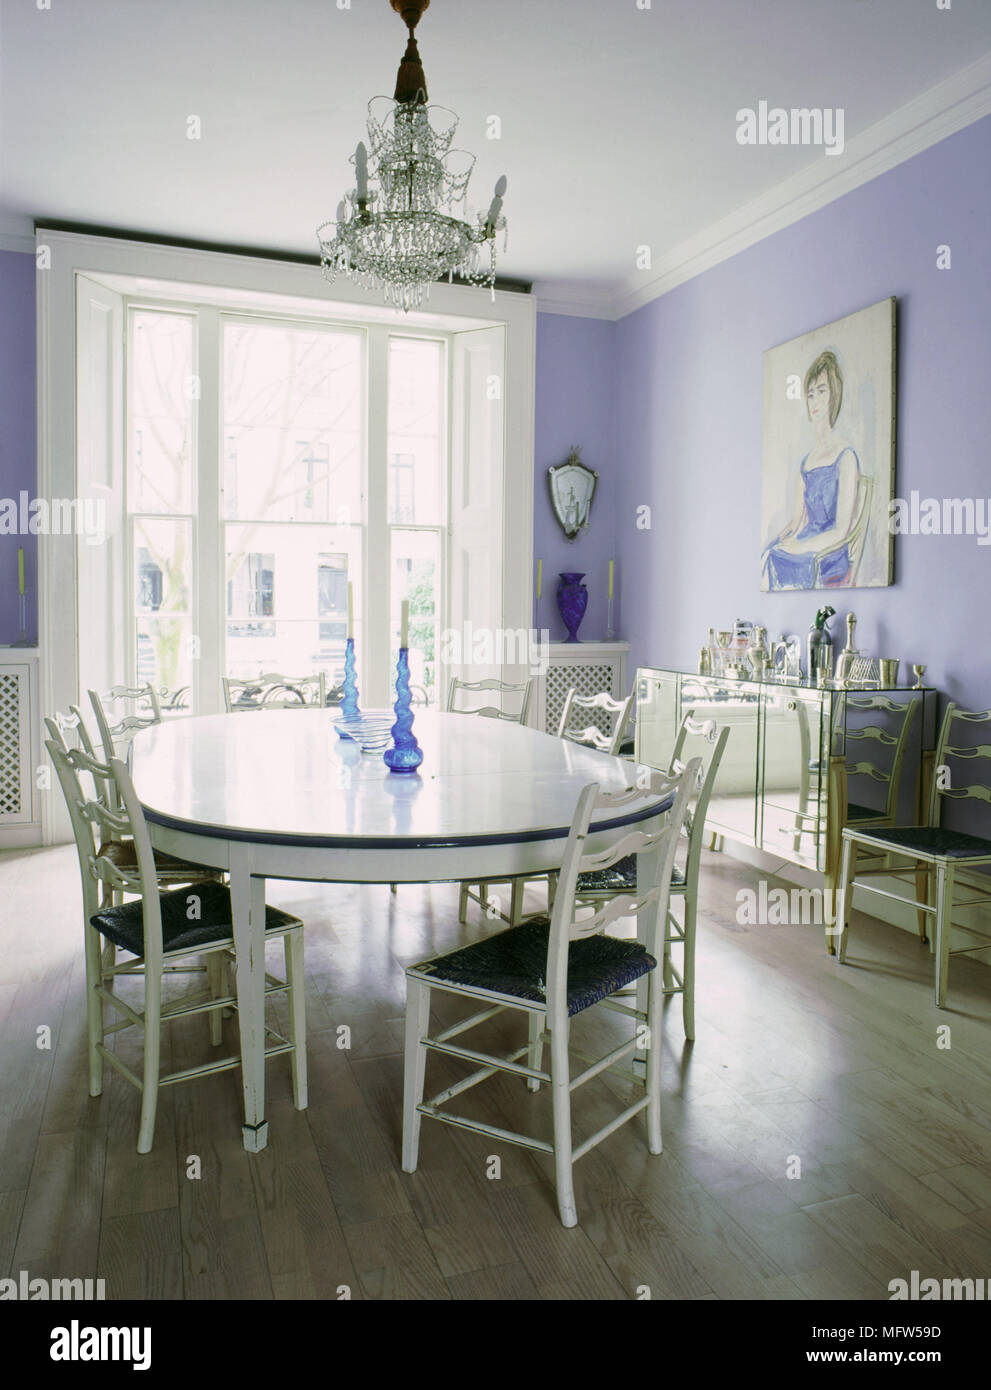 Traditional Dining Room With Oval Dining Table And Chairs Mirrored - Traditional oval dining table